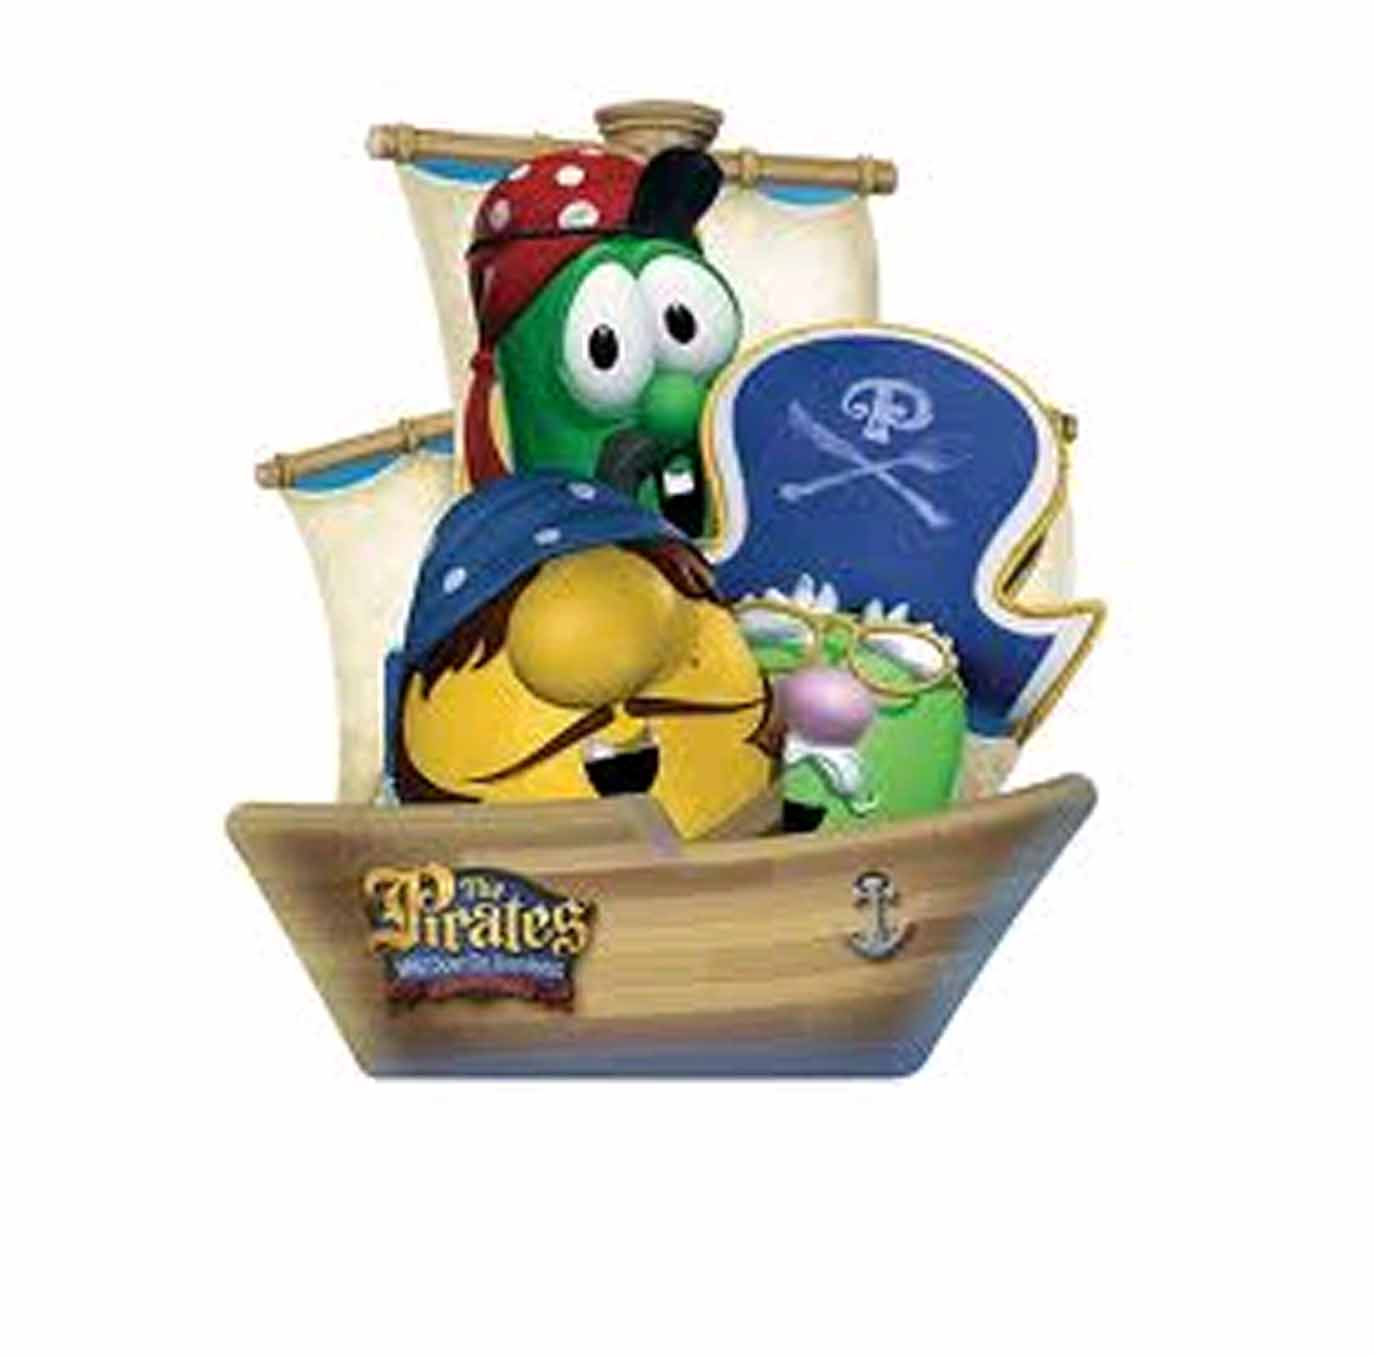 We Are The Pirates Who Do Anything Suitcases And Sippy Cups